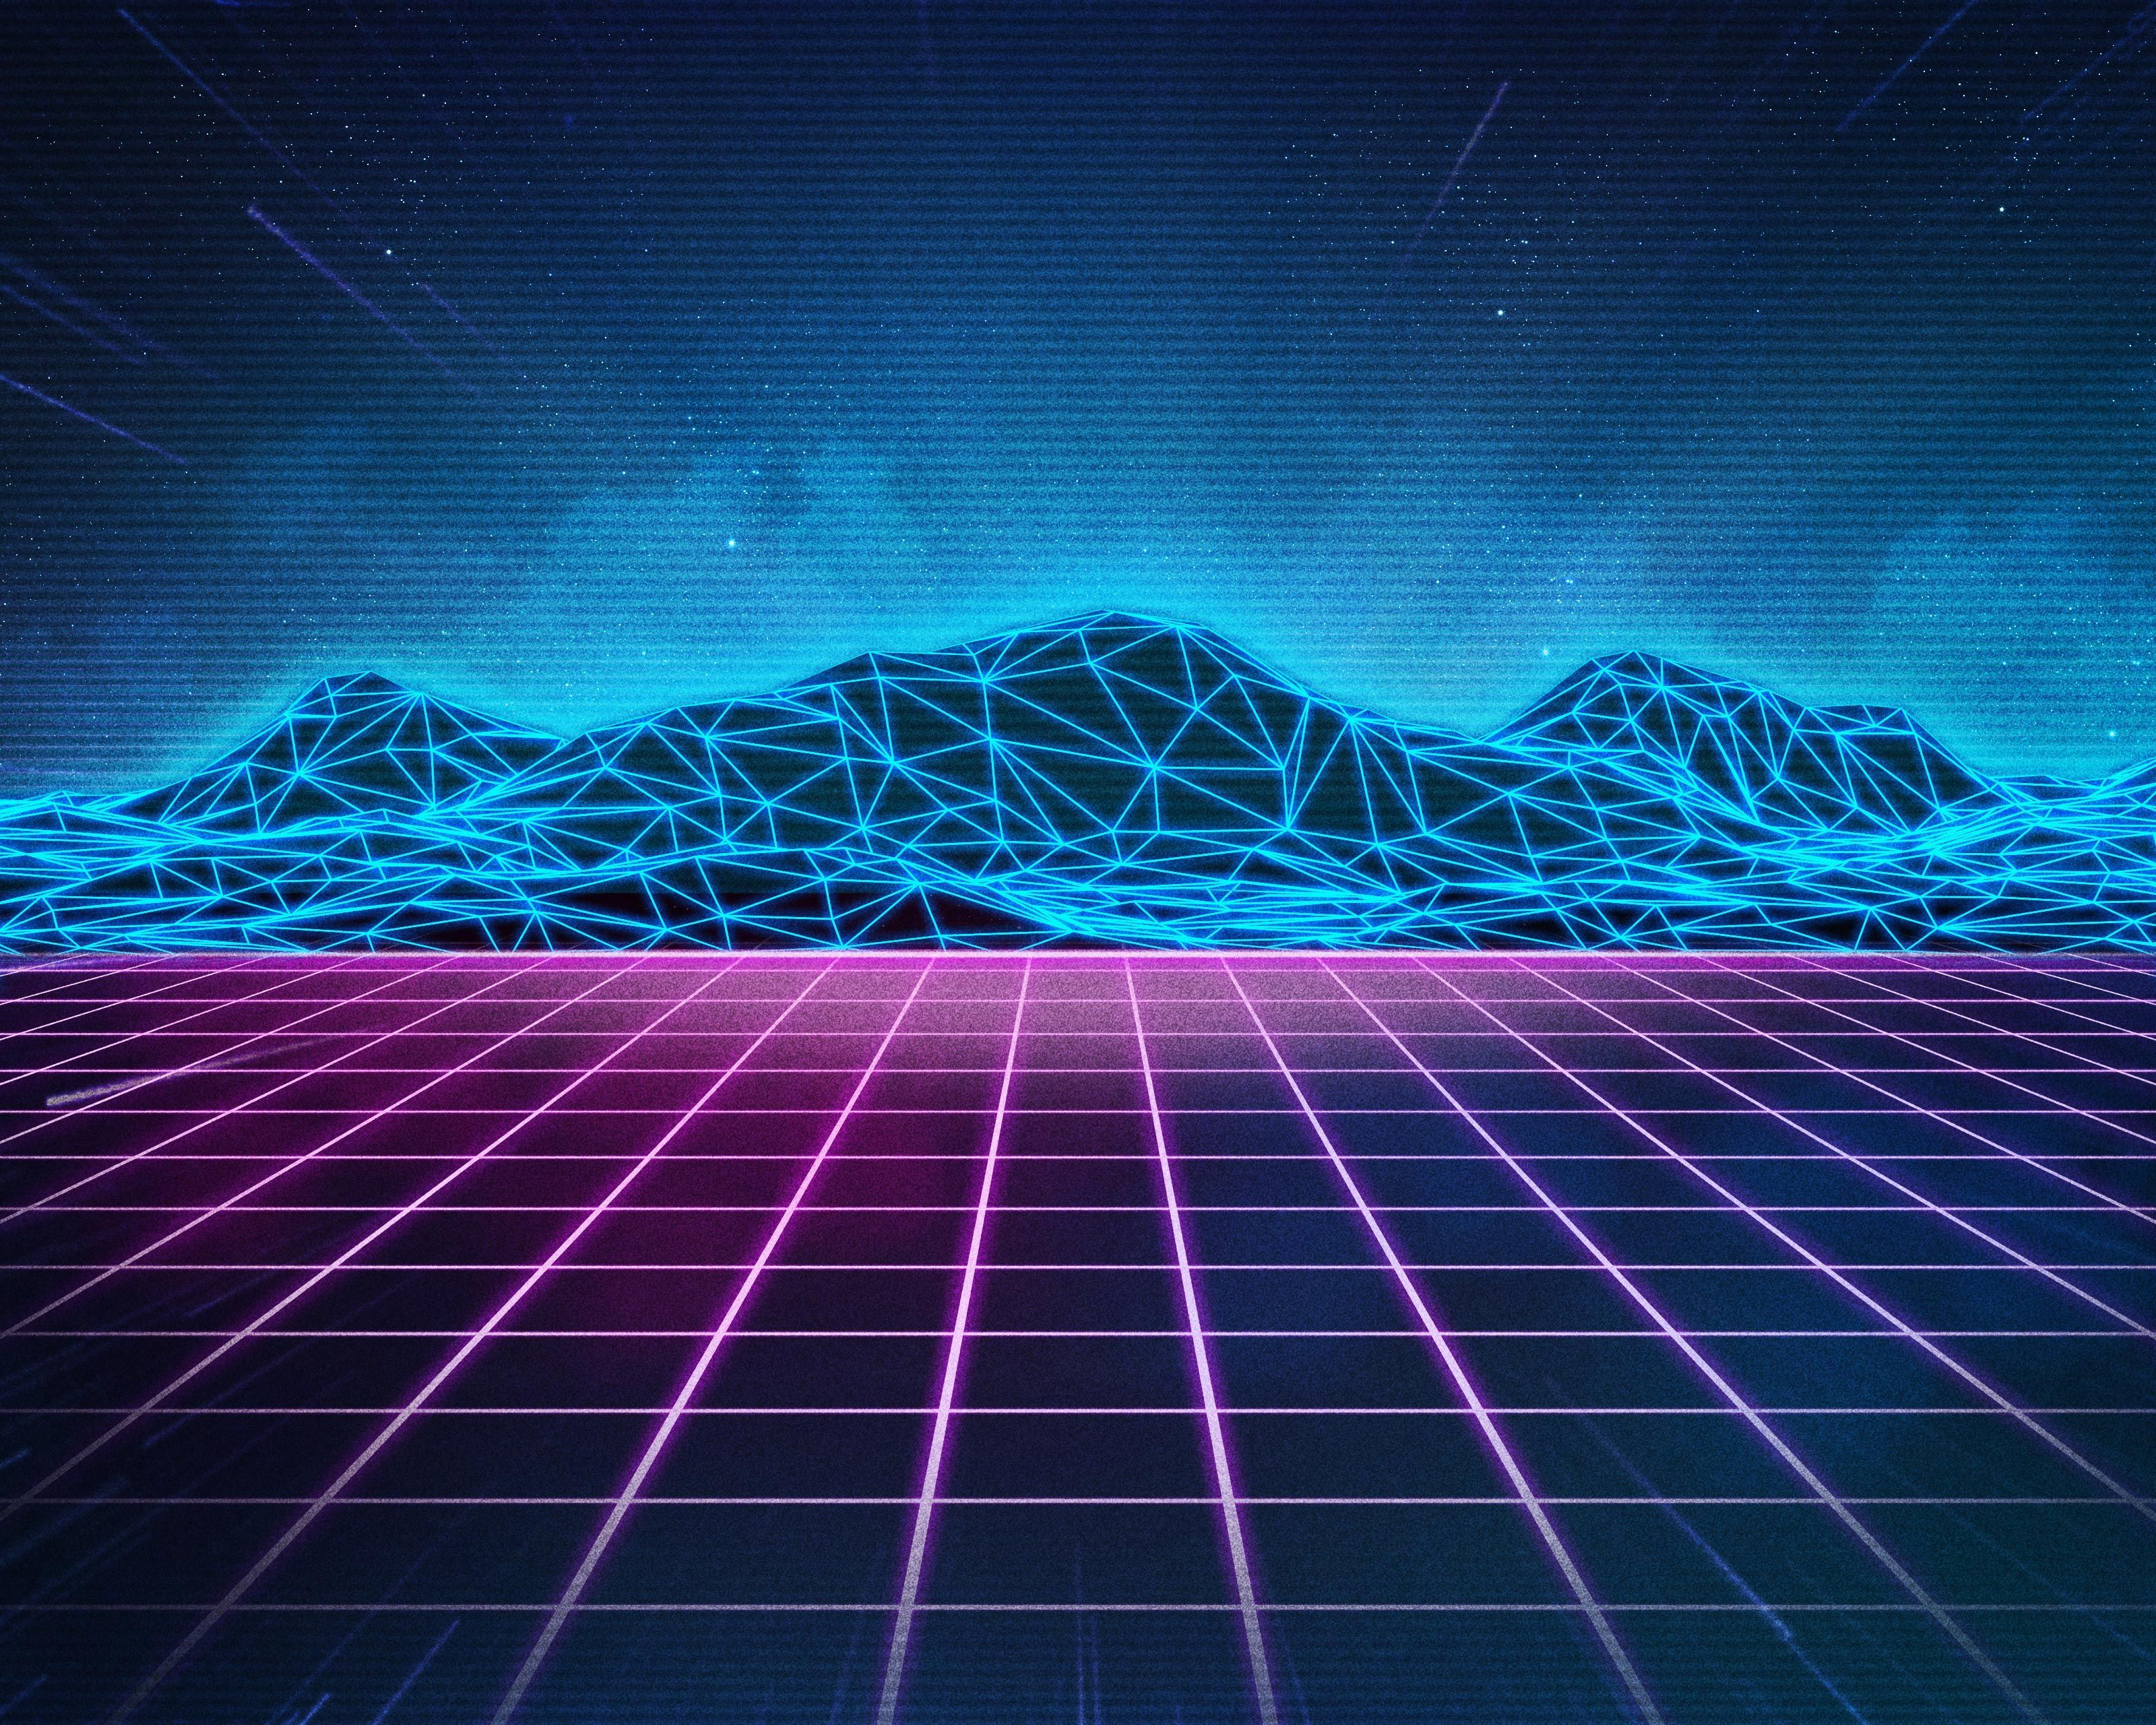 80s Desktop Wallpapers Top Free 80s Desktop Backgrounds Wallpaperaccess